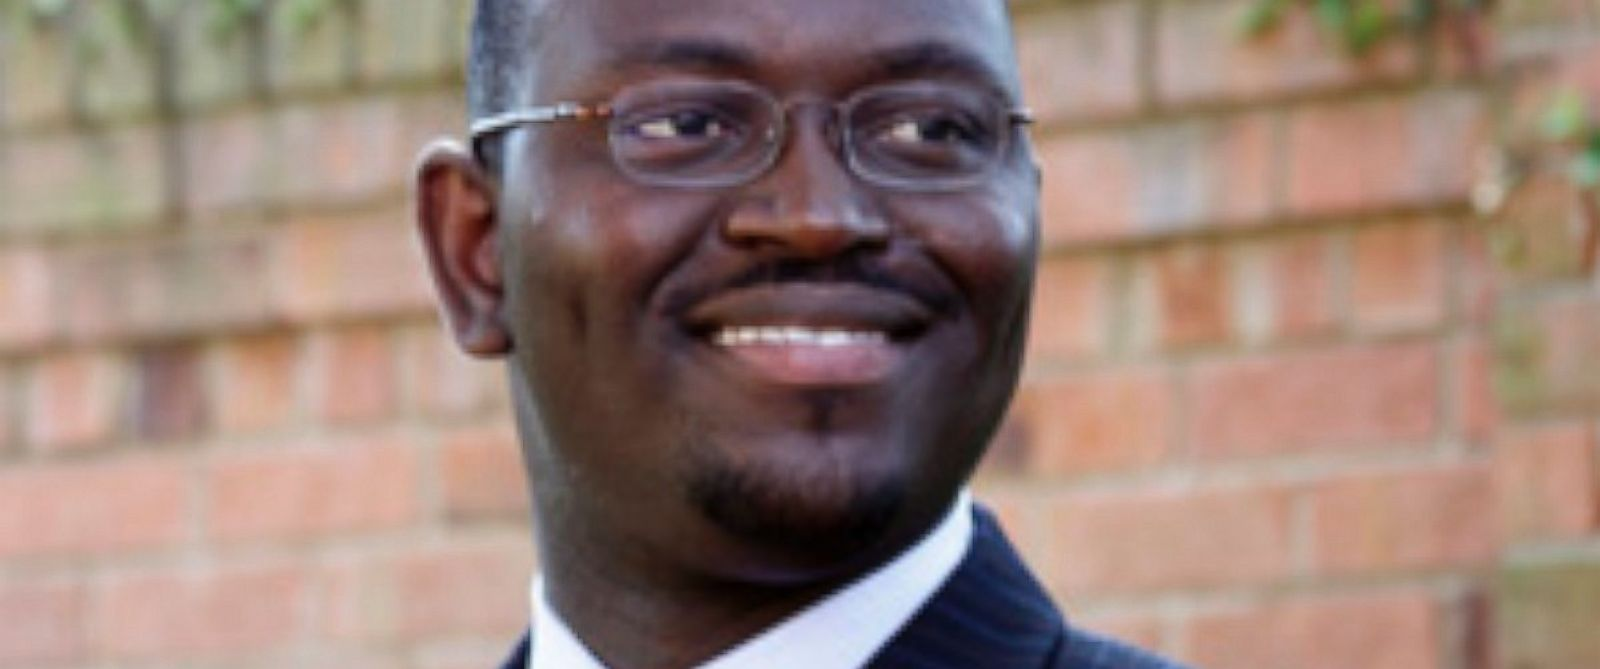 Rev. Clementa Pinckney is seen in this image from the Emanuel African Methodist Episcopal Church in Charleston, S.C.